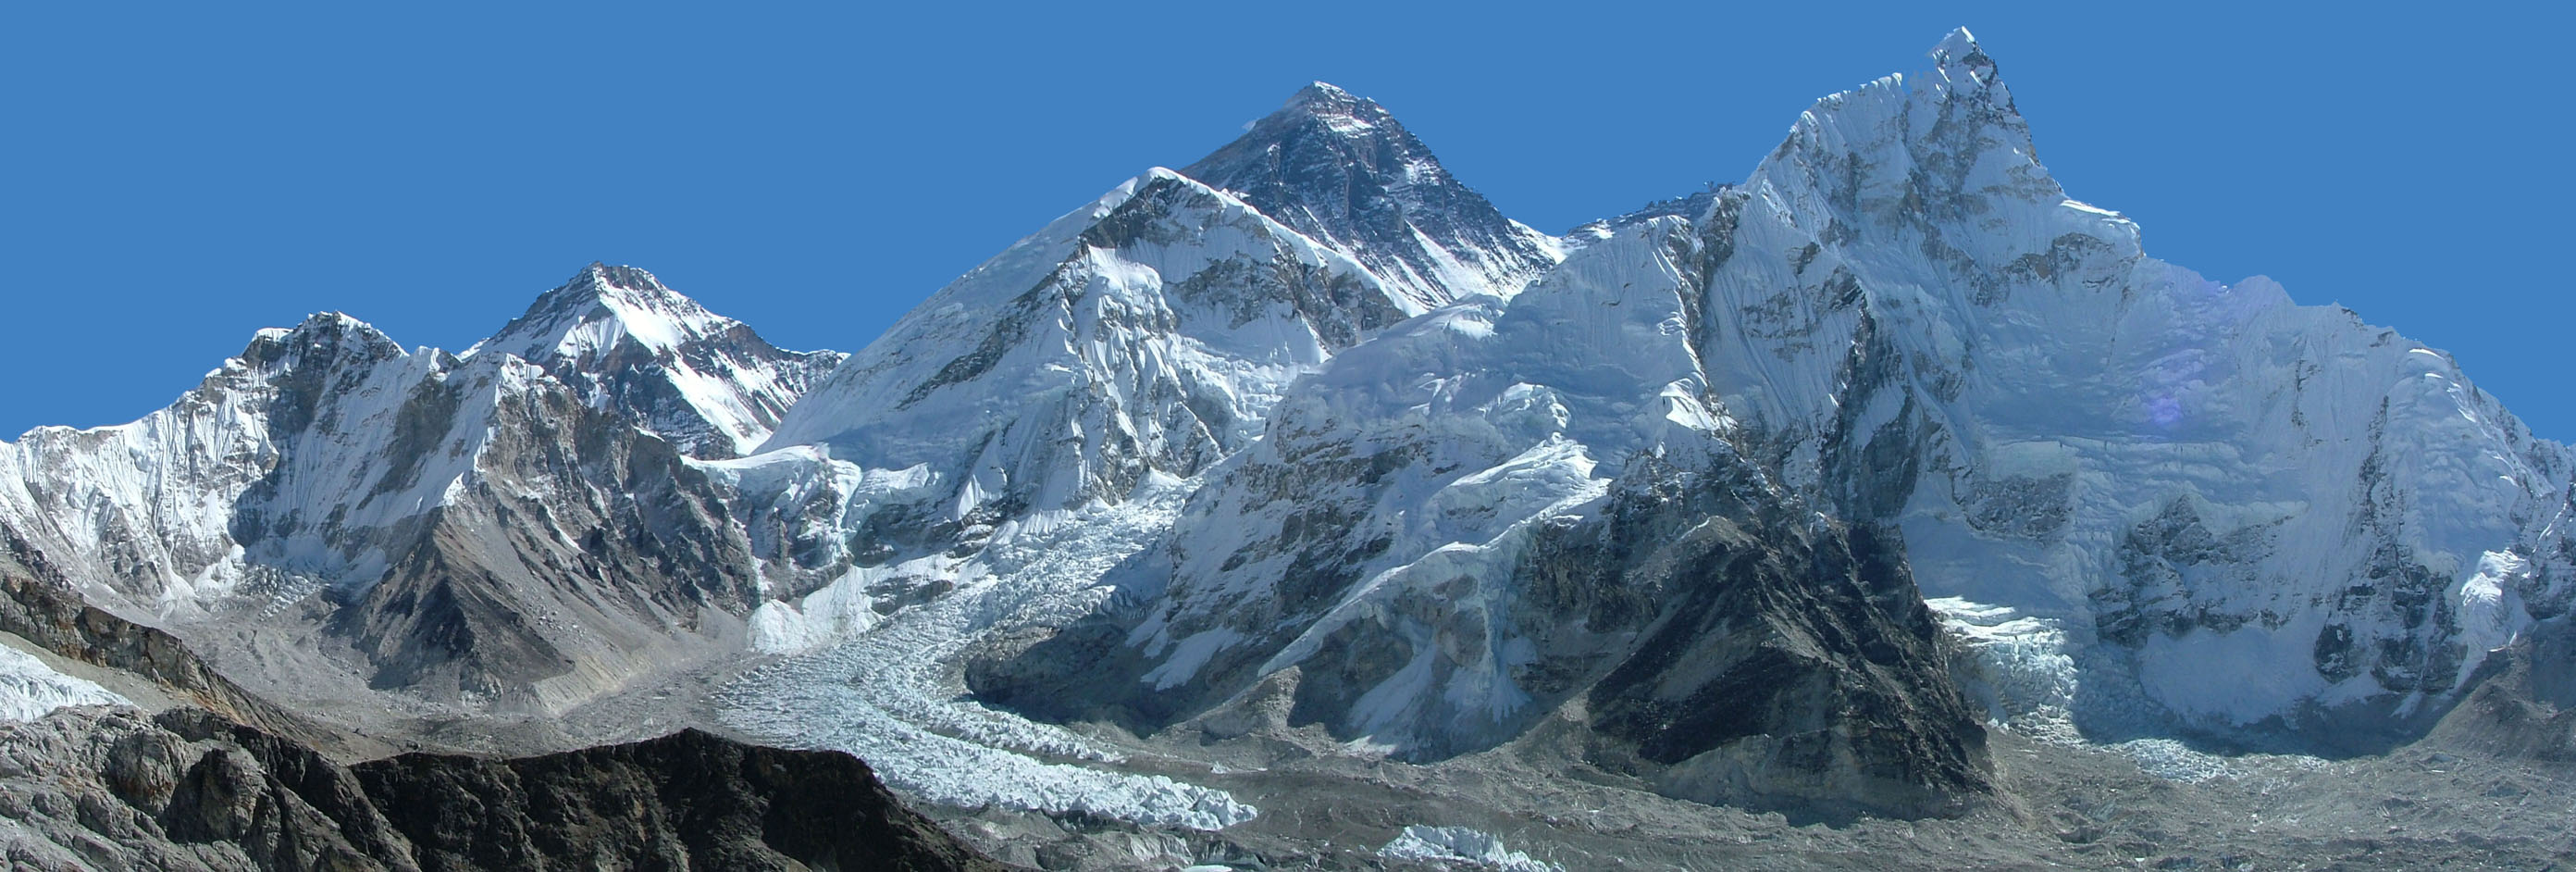 File:Panoramique mont Everest jpg - Wikimedia Commons